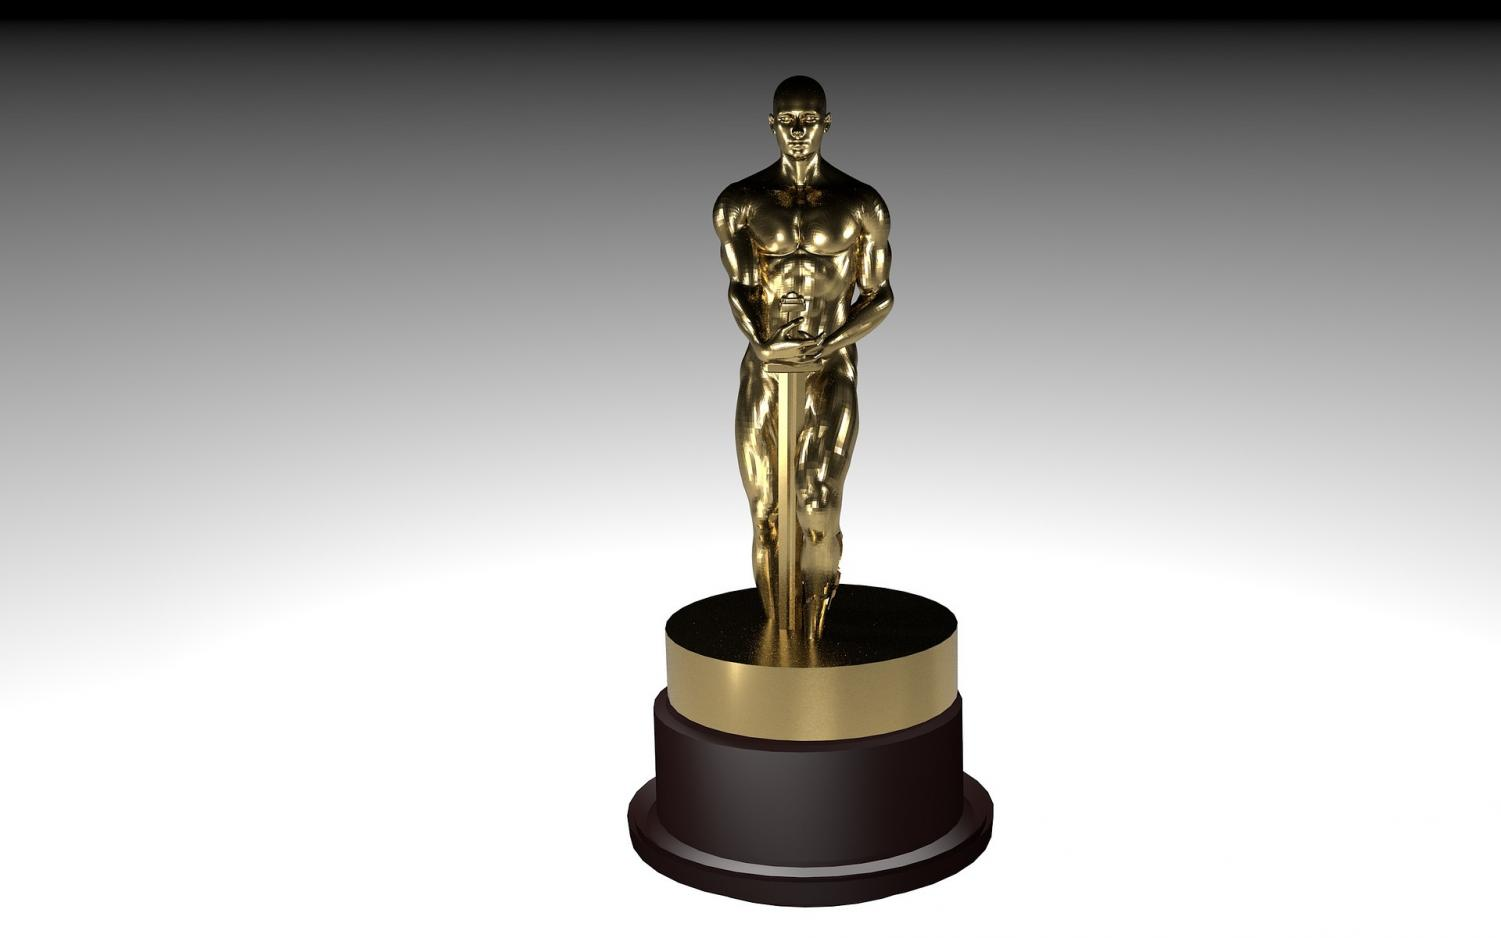 The Academy Awards, also known as the Oscars, only present awards to certain genres of film, leaving out fantasy, horror, superhero, and more.